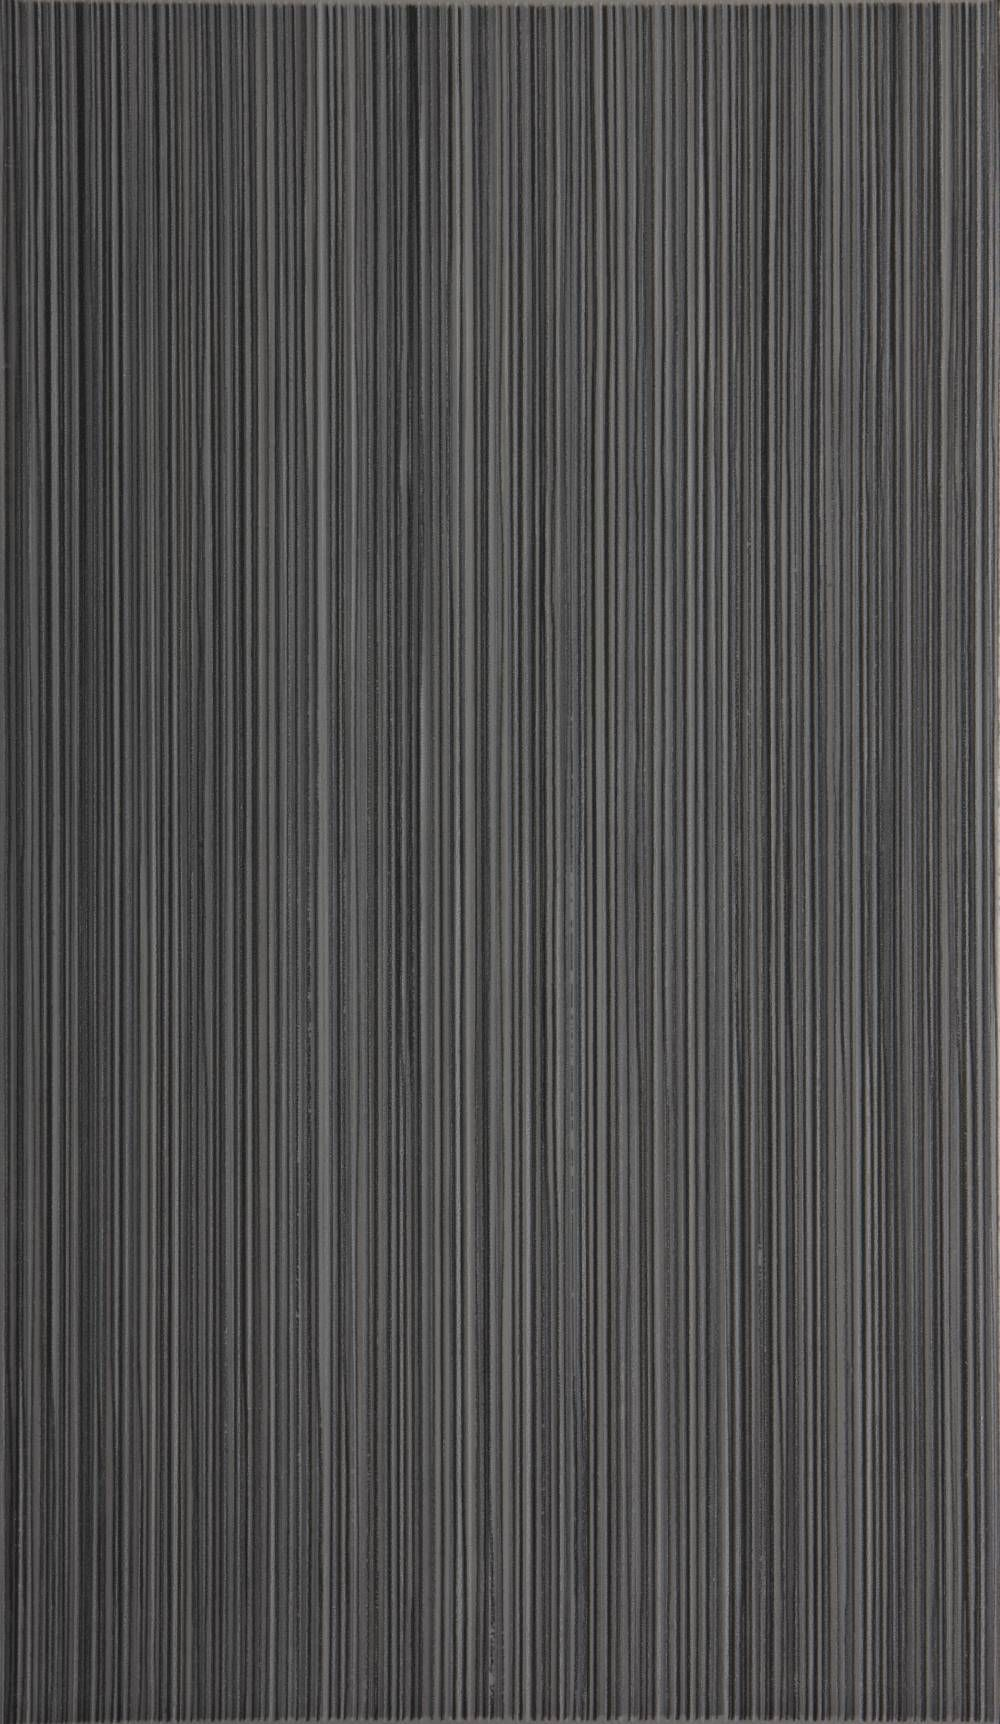 Linear Dark Gray Wood Effect Tile Gotta Have It Gray